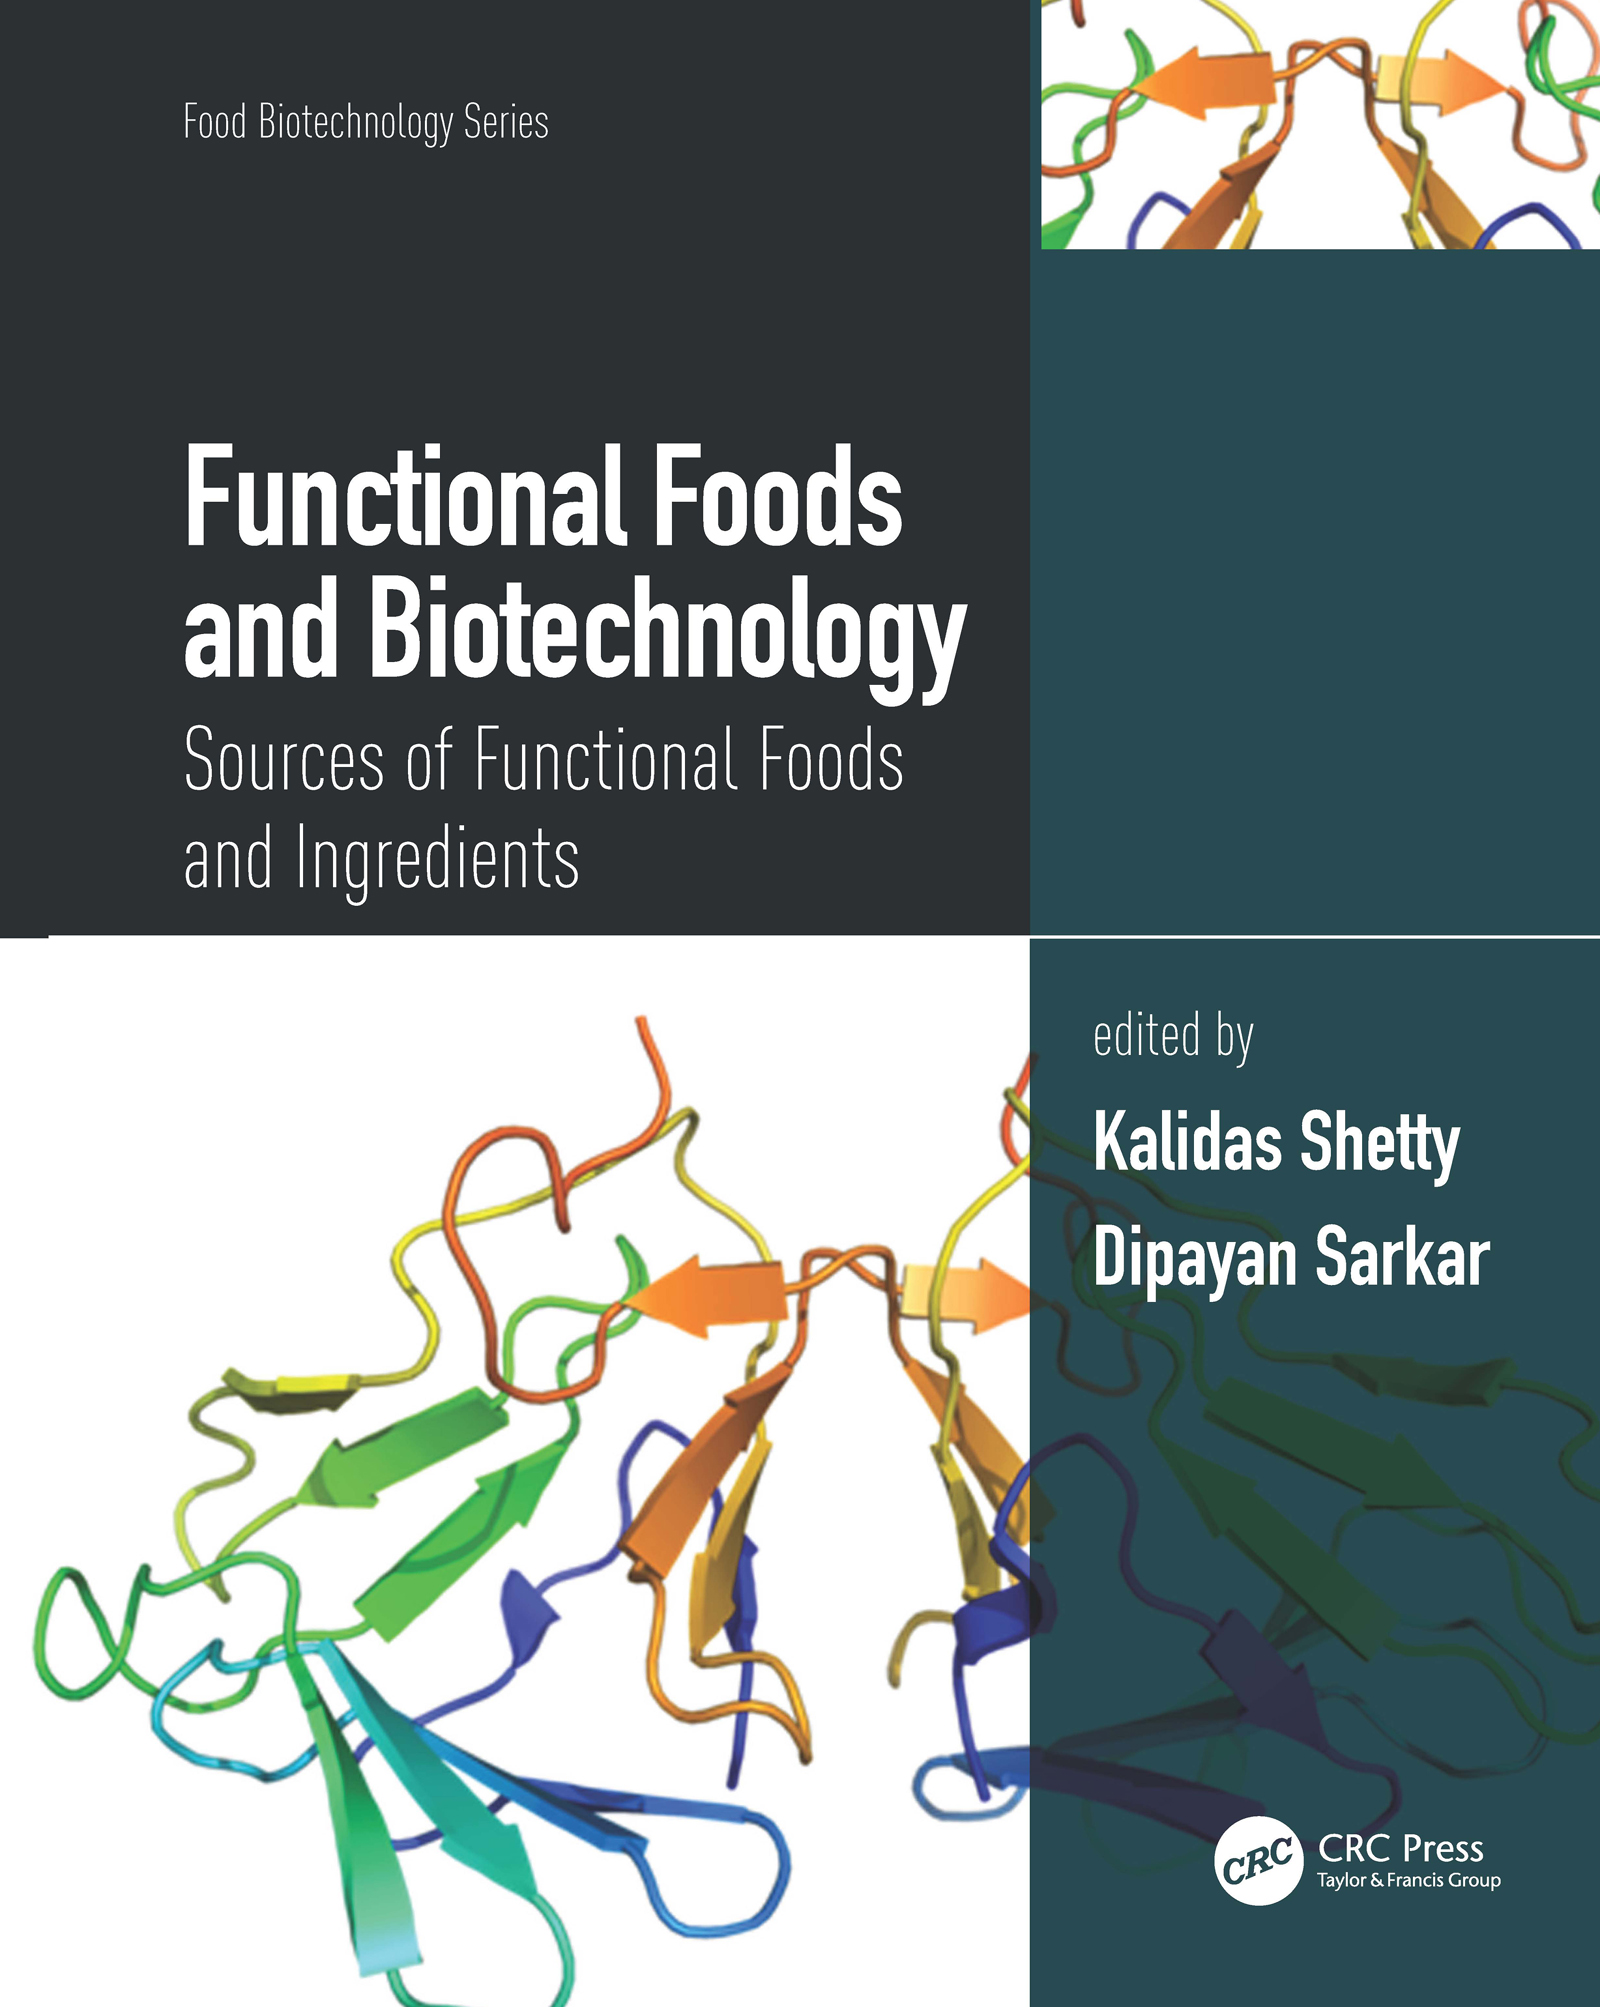 Functional Foods and Biotechnology: Sources of Functional Foods and Ingredients book cover